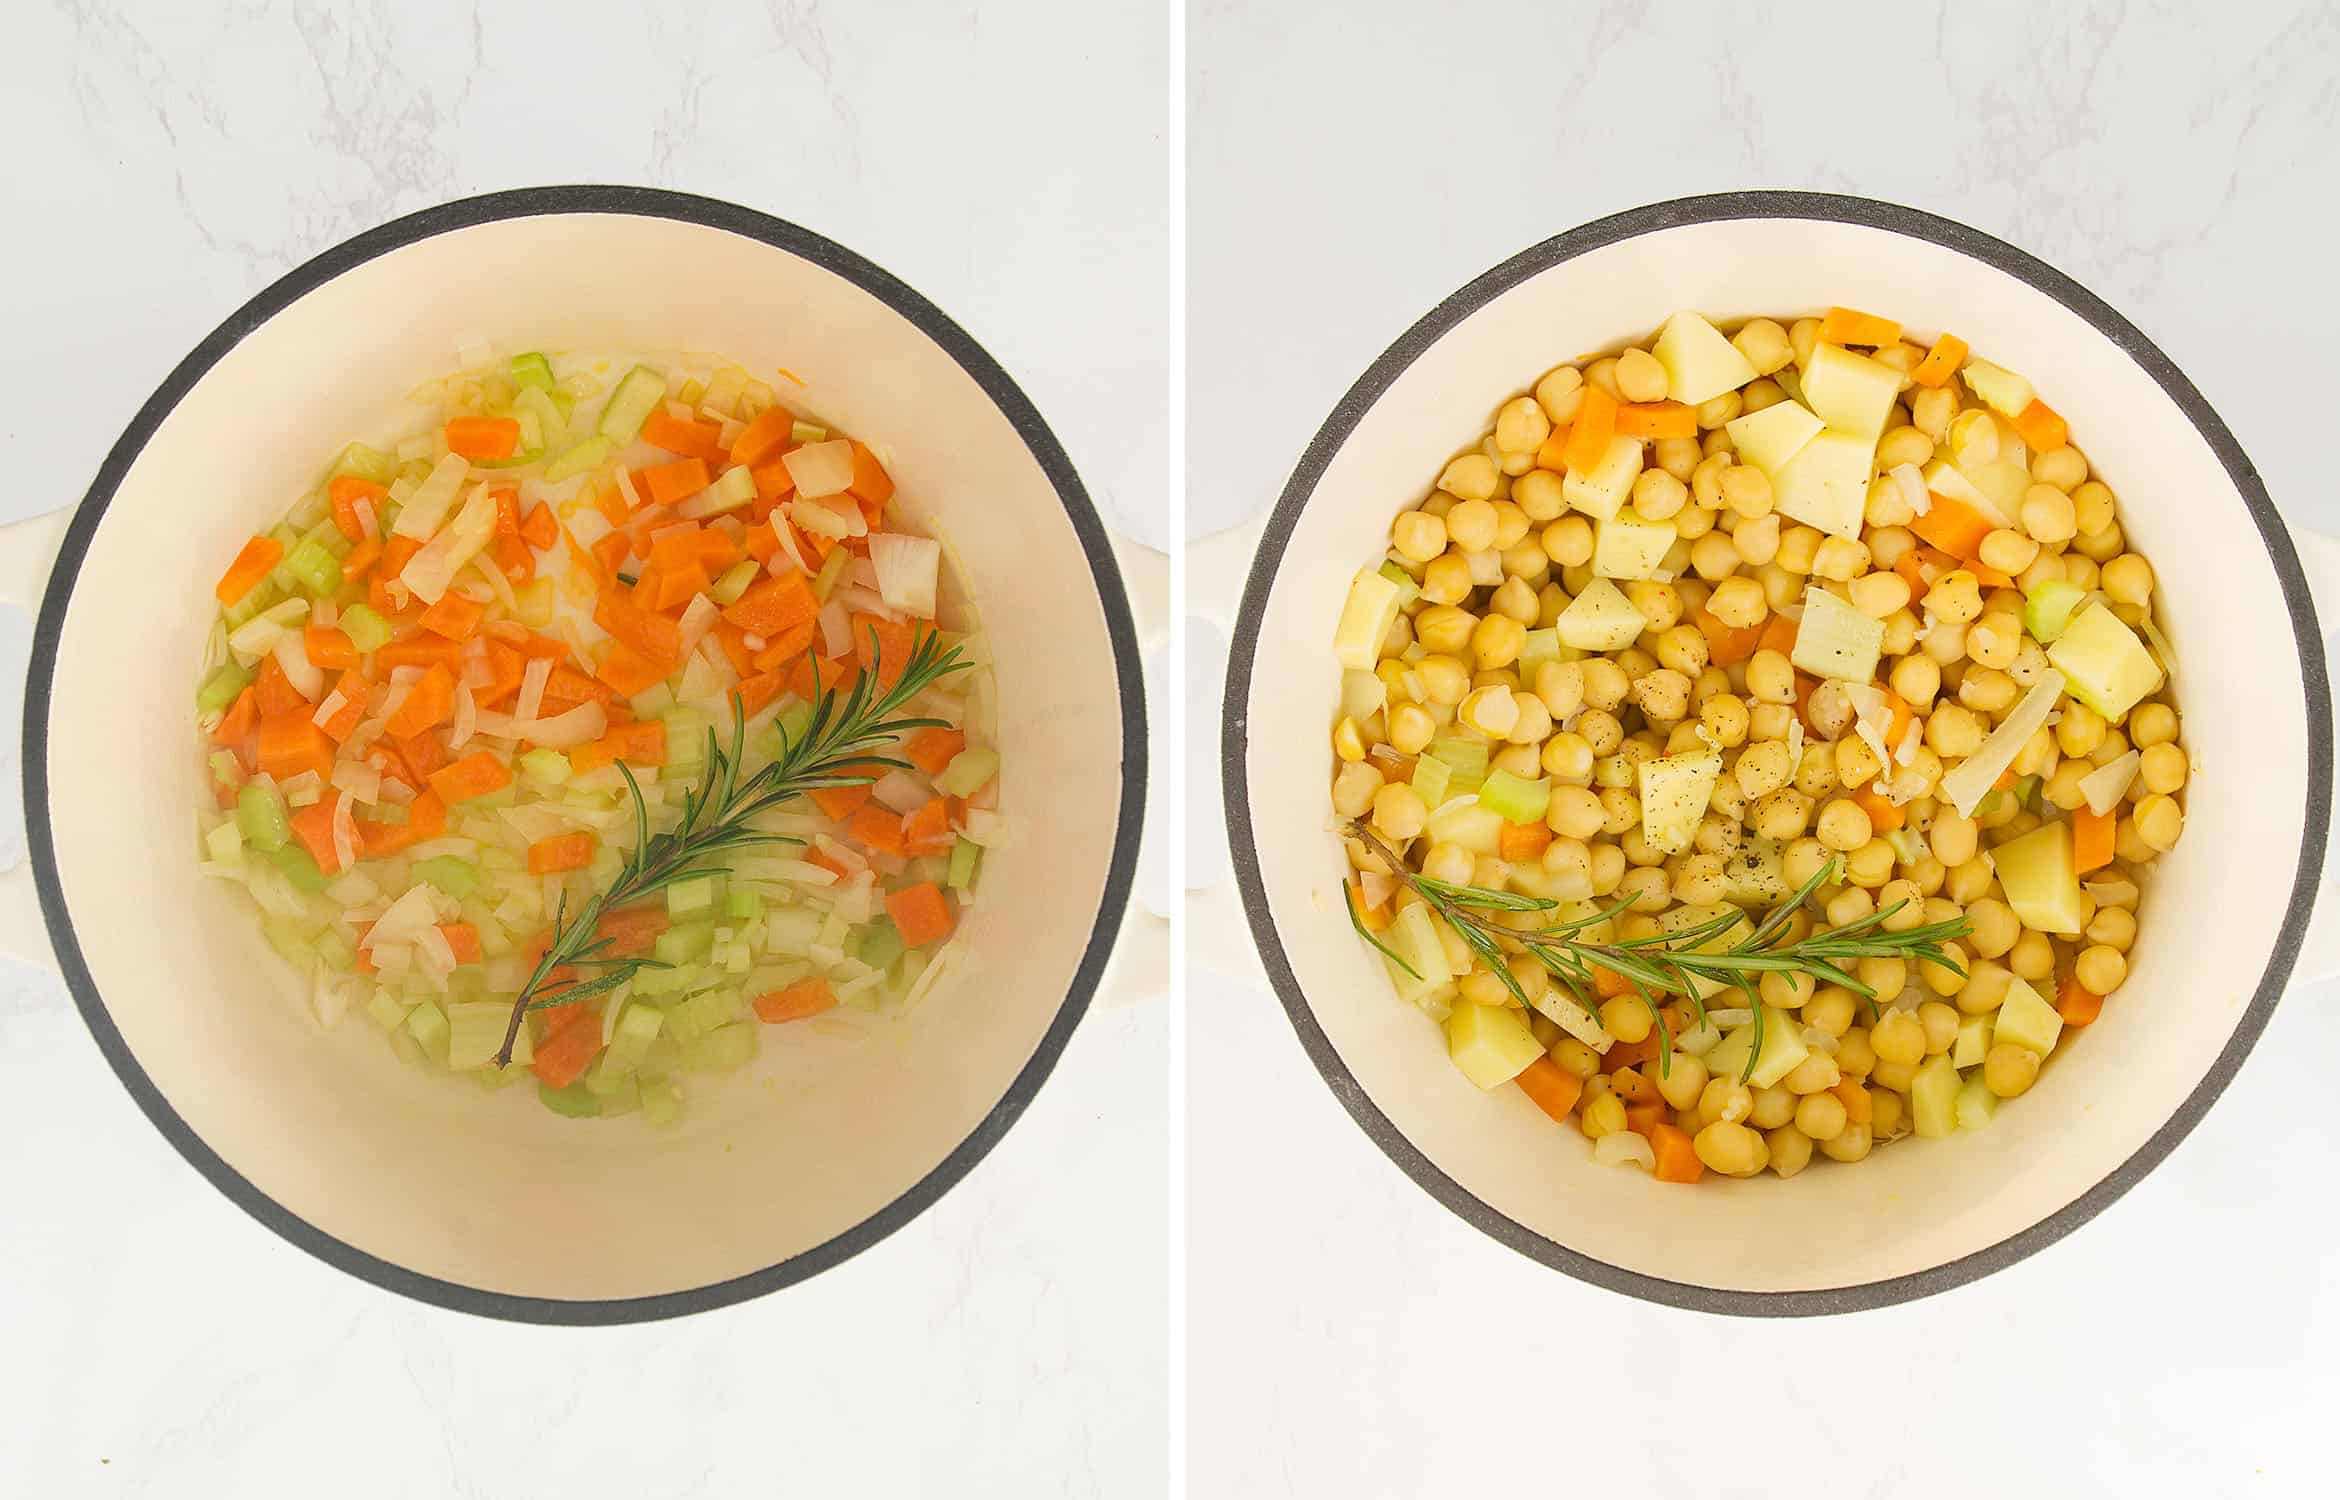 The first image shows diced vegetables in a white pot. The second image shows the addition of chickpeas.